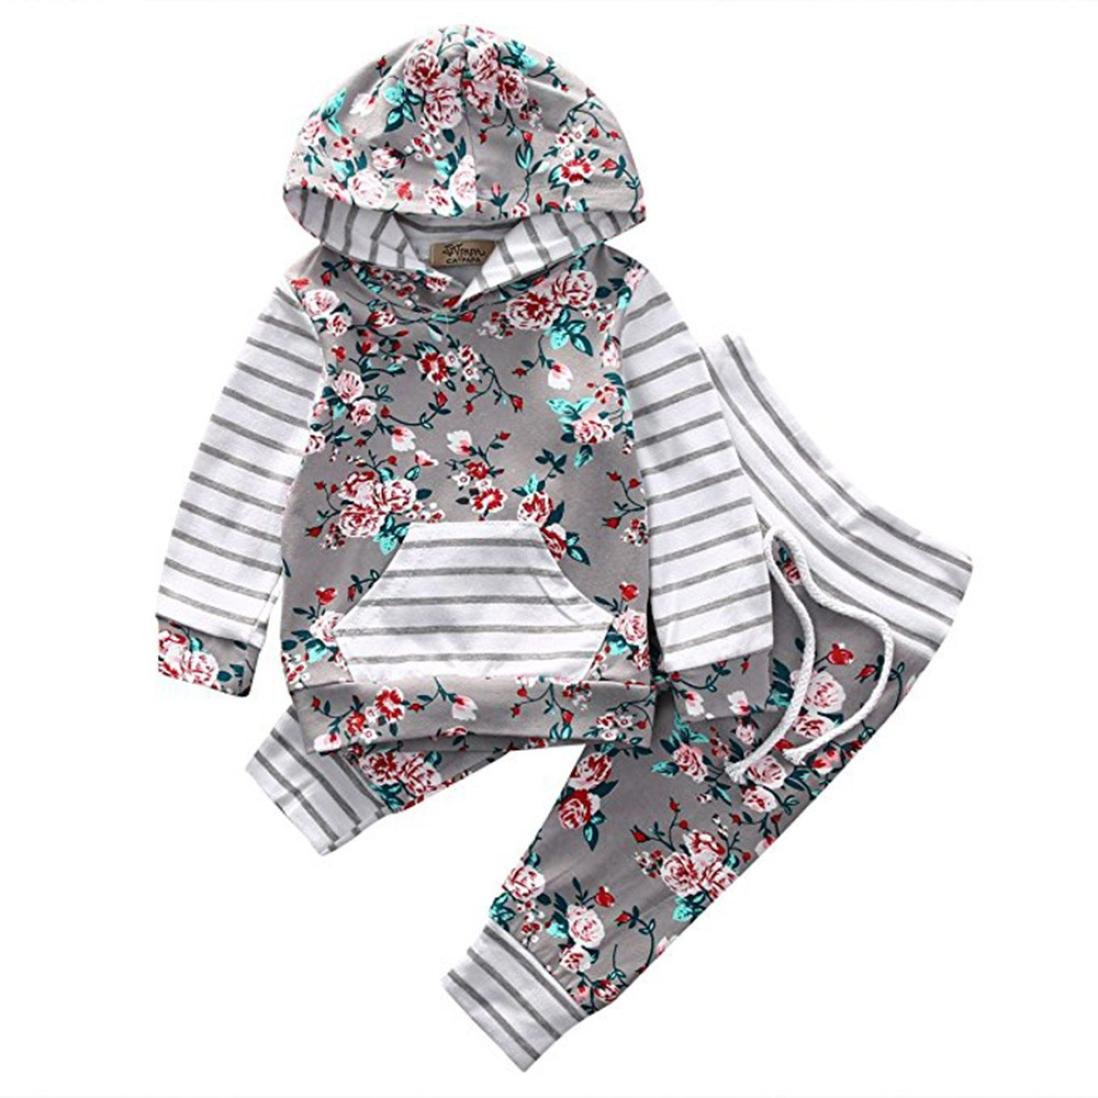 HOT,YANG-YI Fashion Newborn Infant Baby Girl Floral Striped Hoodie Tops+Pants Outfits Set (Gray, 70cm/6M)